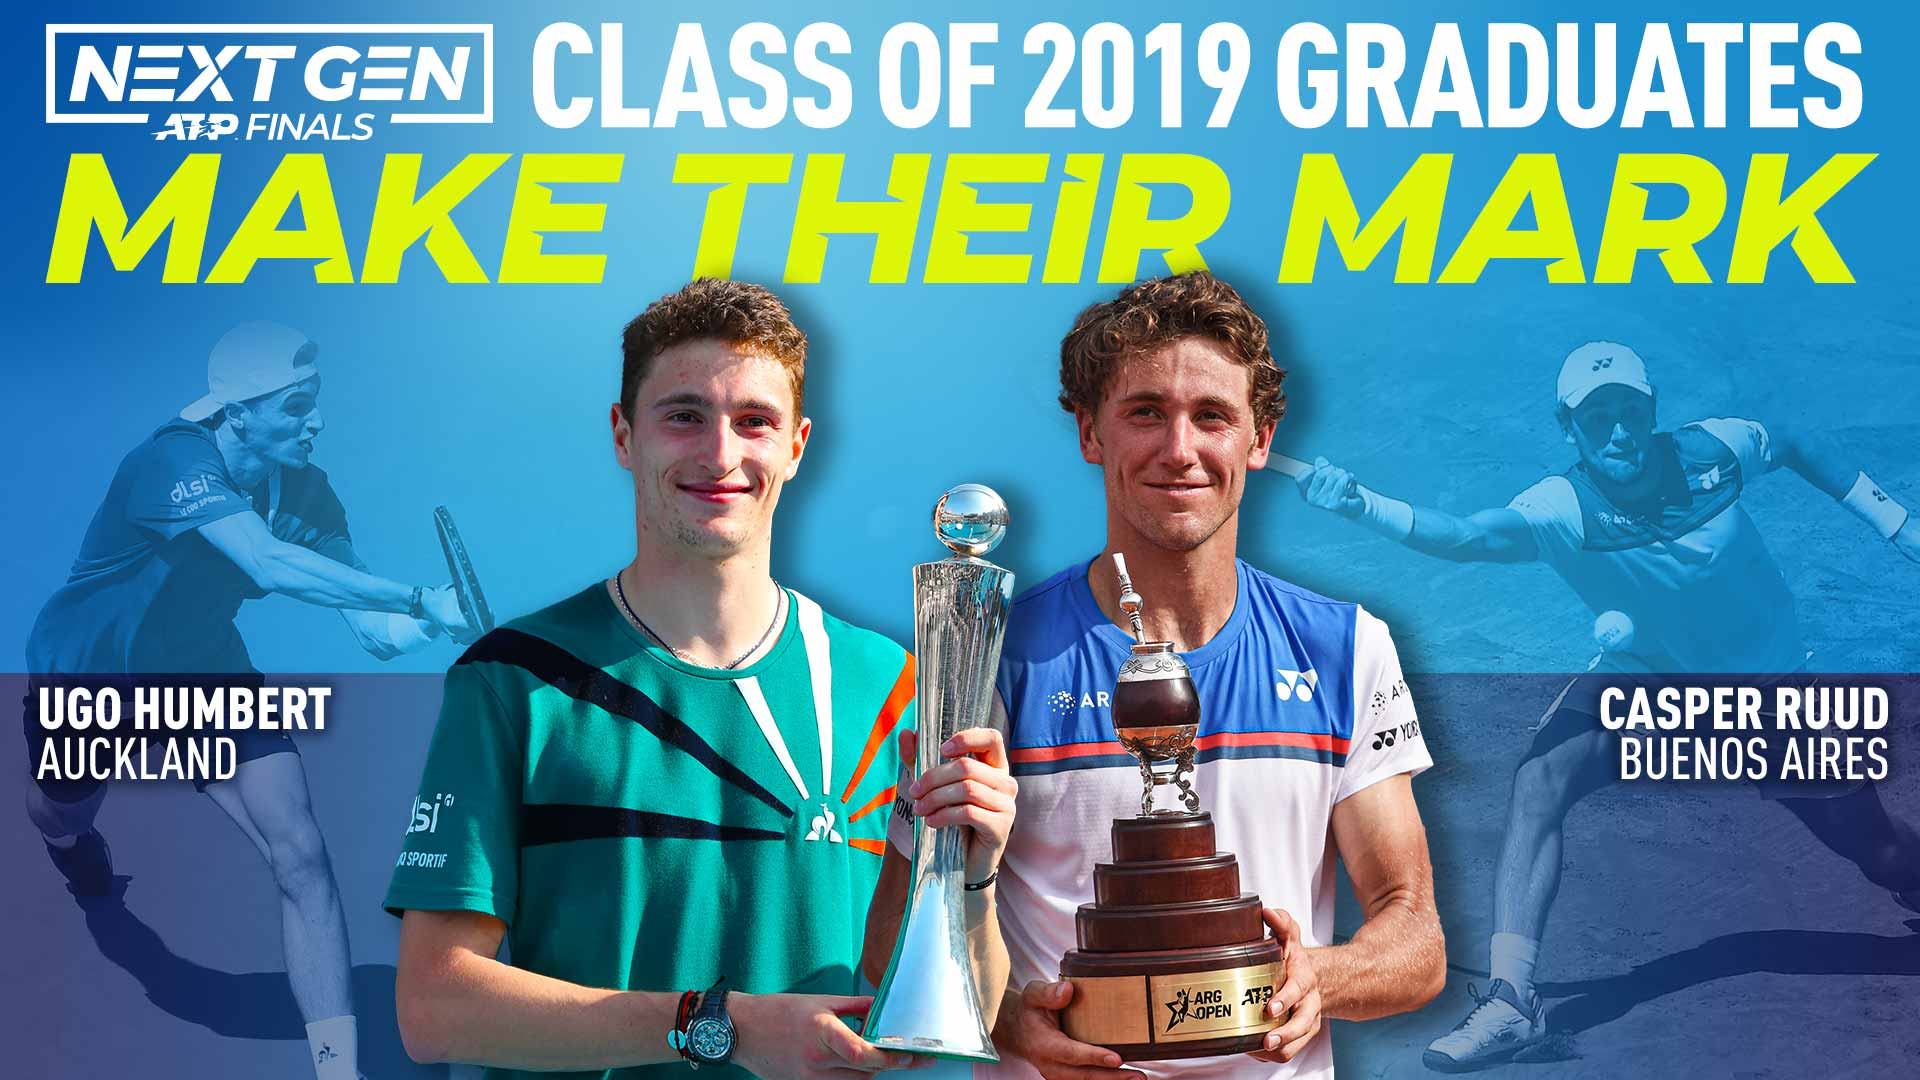 Ugo Humbert and Casper Ruud competed at the 2019 Next Gen ATP Finals in Milan.